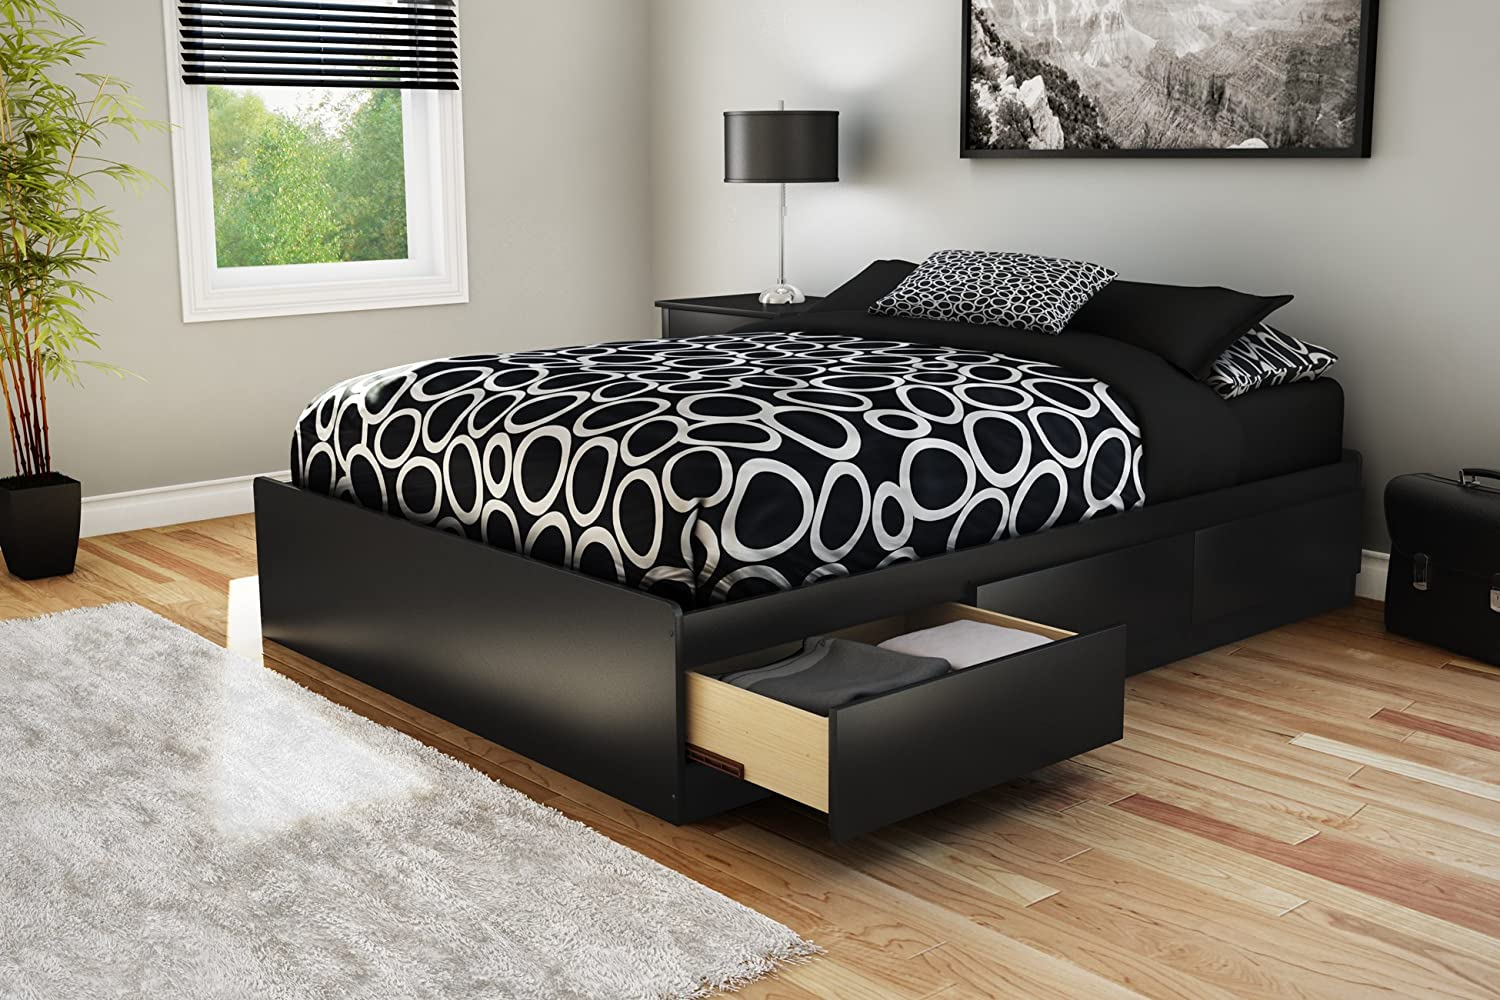 Amazon.com: South Shore Storage Full Bed Collection 54-Inch Full Mates Bed,  Pure Black: Kitchen & Dining - Amazon.com: South Shore Storage Full Bed Collection 54-Inch Full